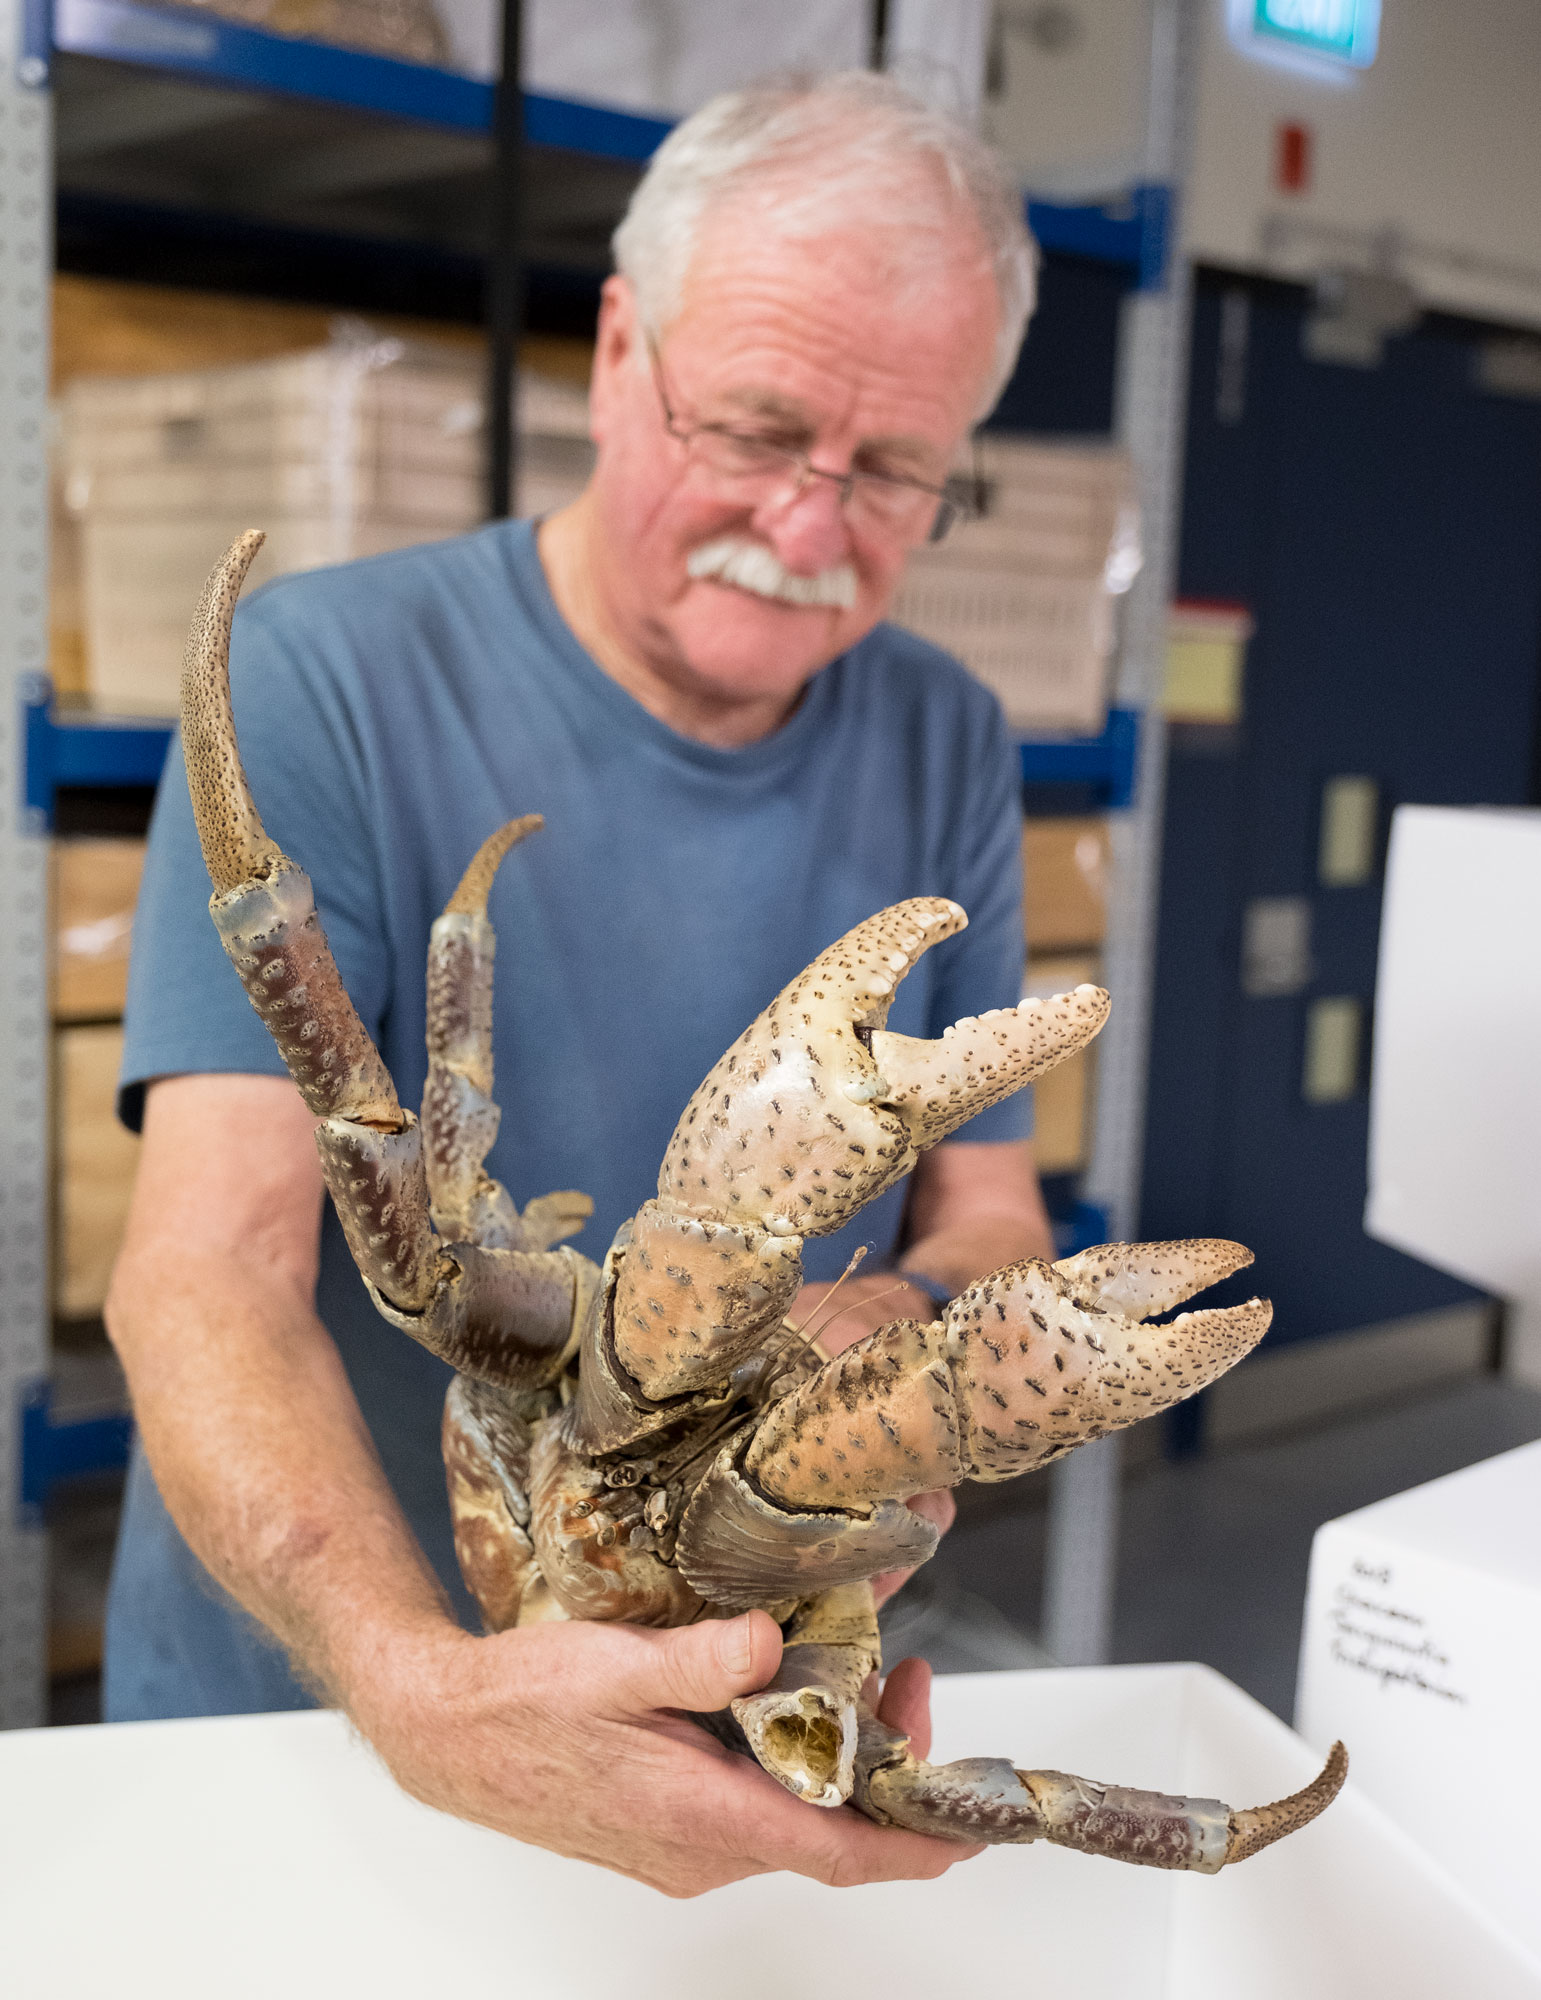 Man holding large crab